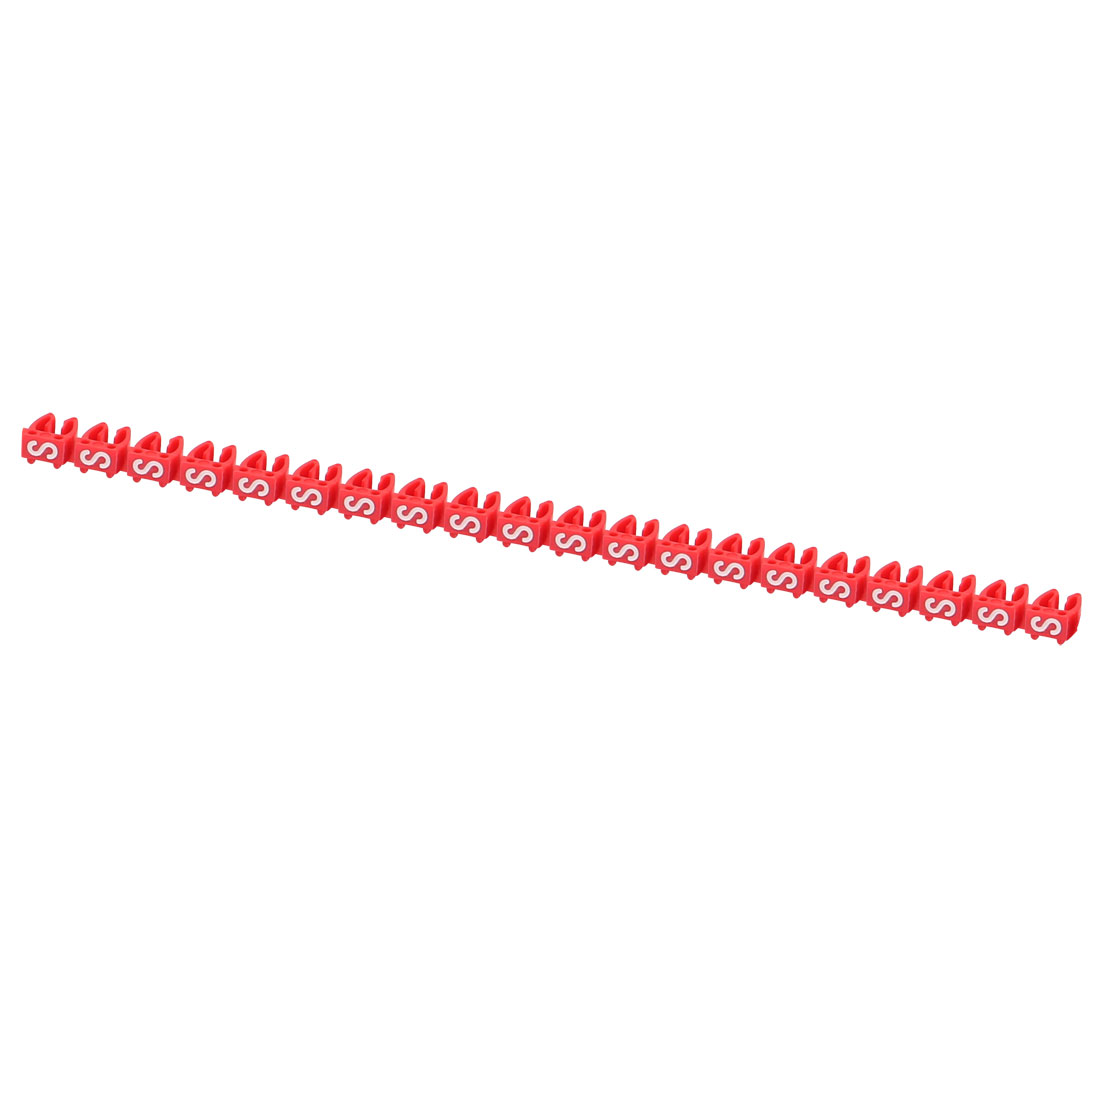 20 Pcs Letters S Network Cable Labels Markers Red for 4.0-6.0mm Dia Cable